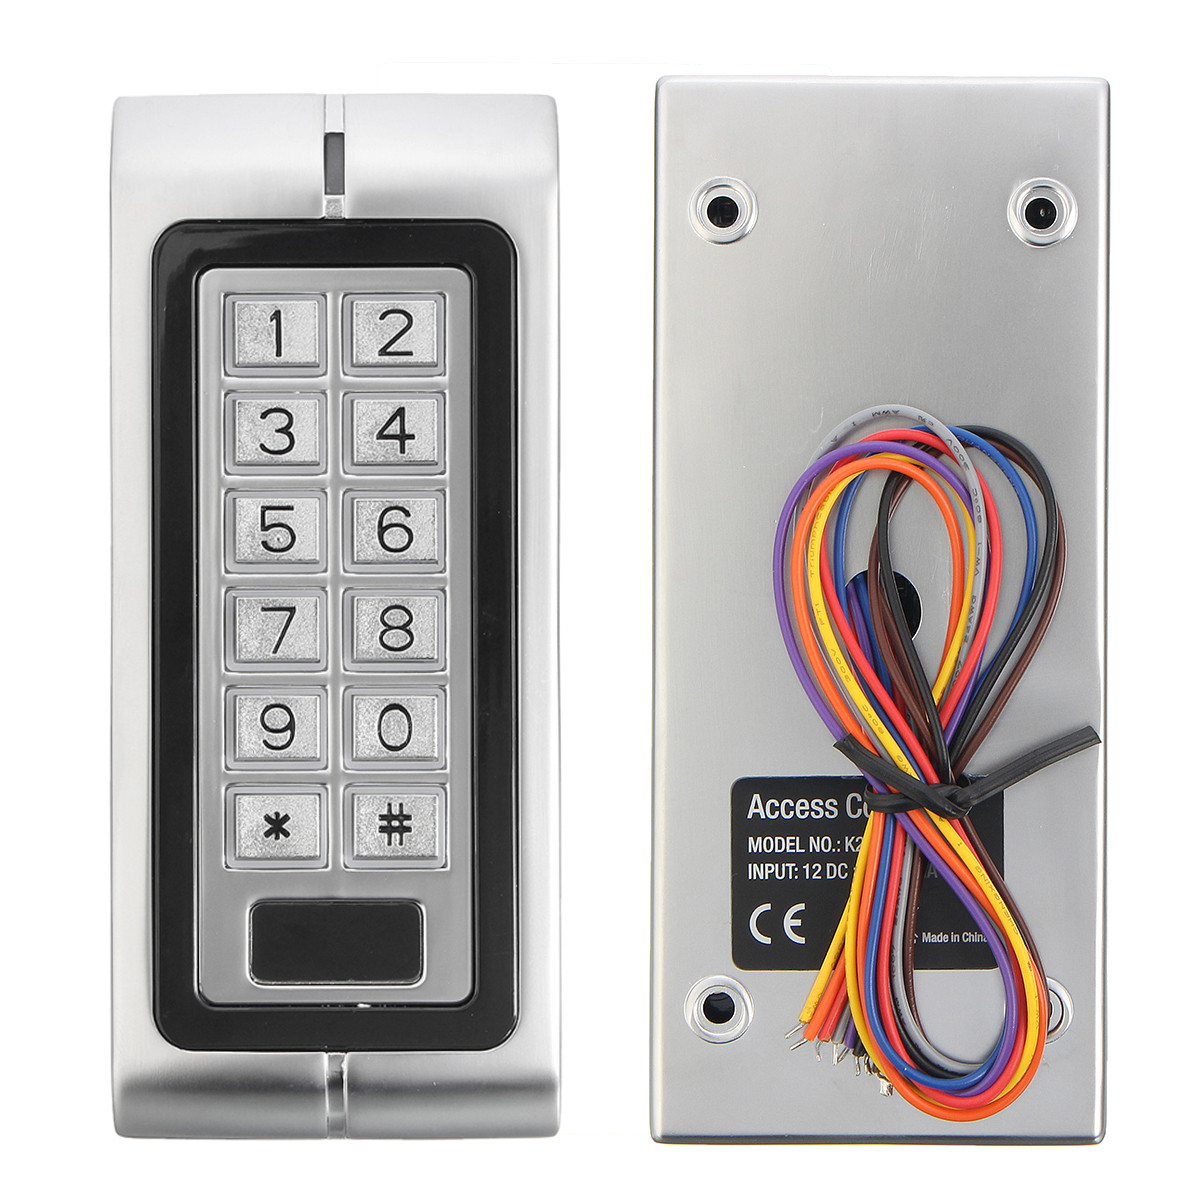 Door Access Control : K waterproof password keypad card reader entry door lock